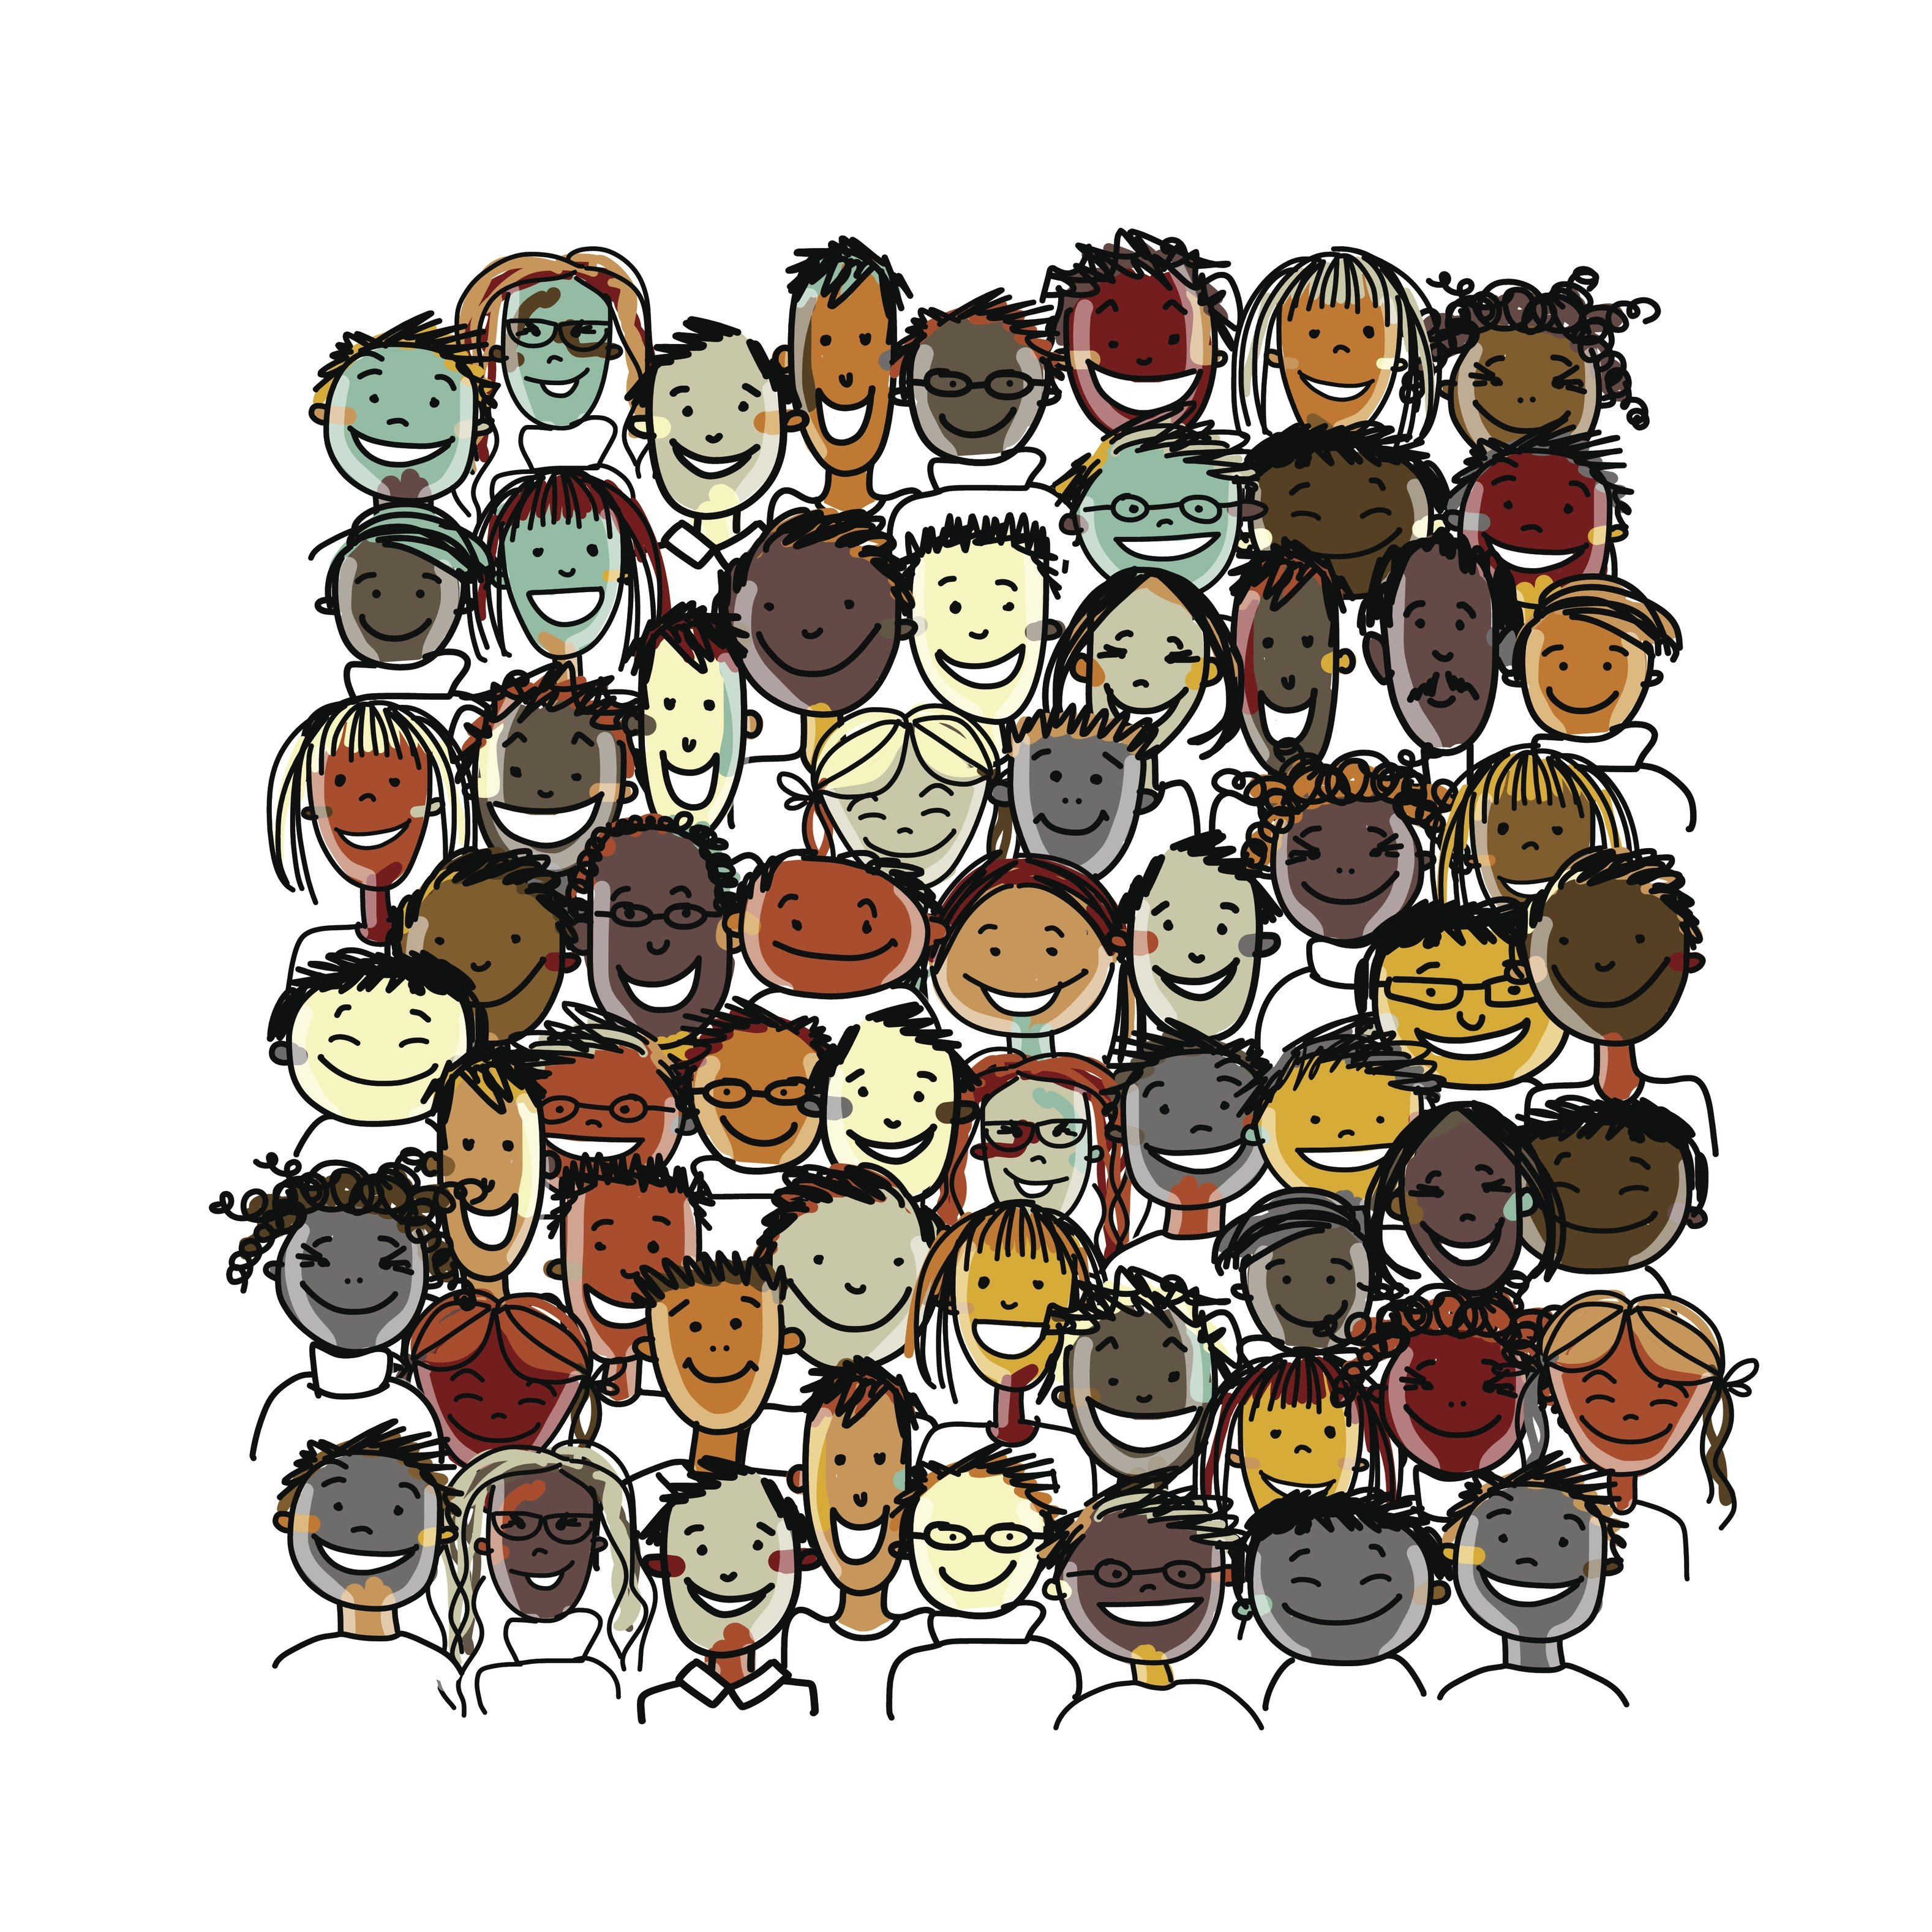 People-crowd-international,-sketch-for-your-design-610652504_3159x3159